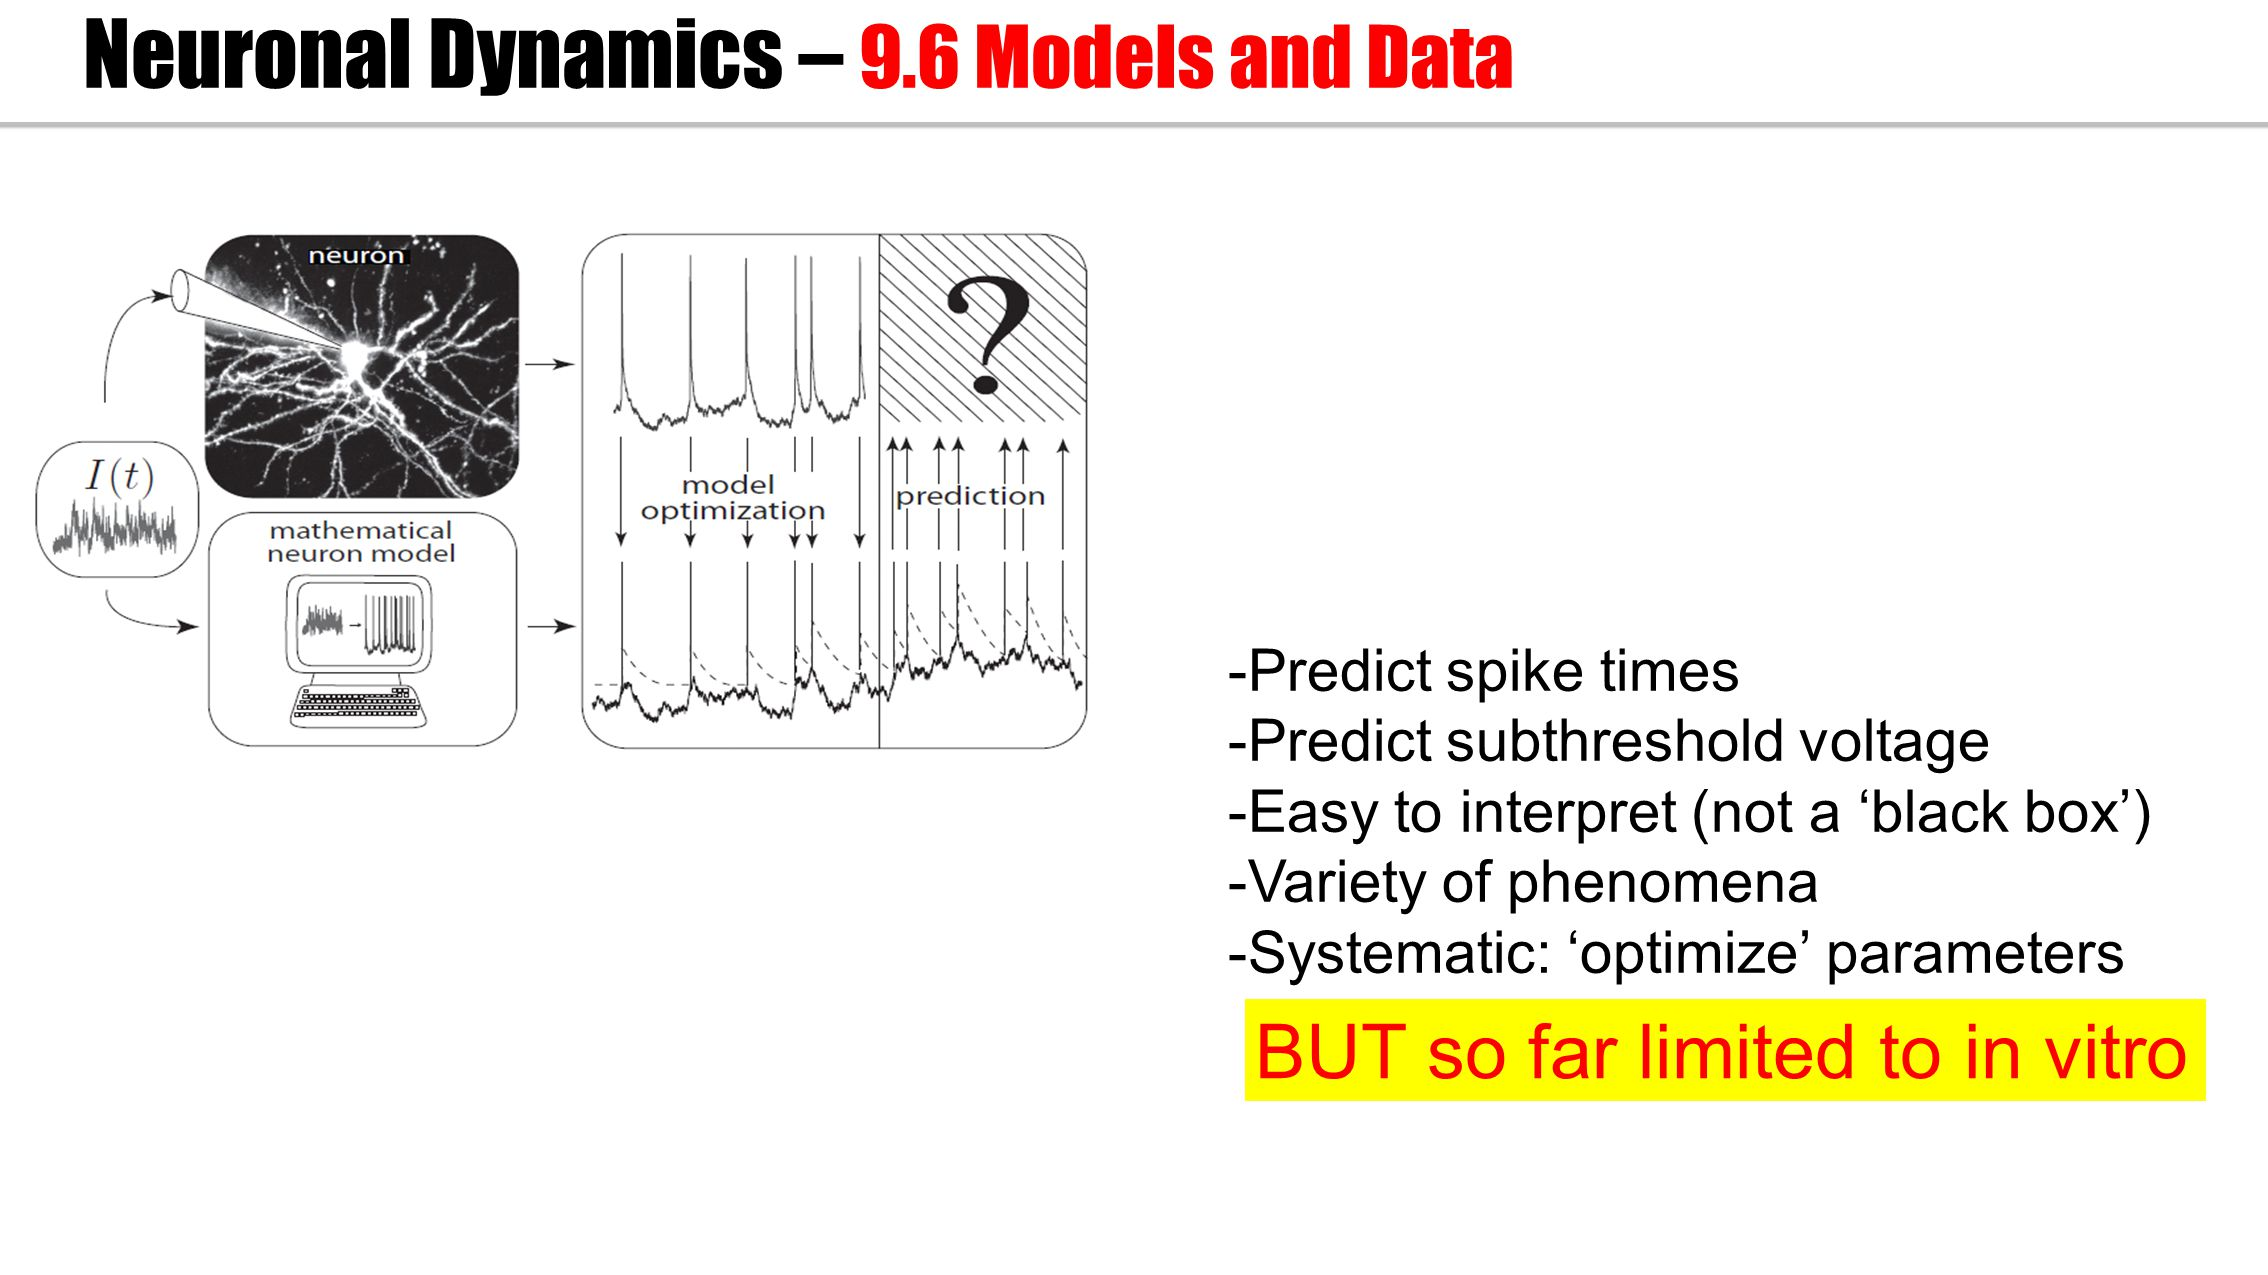 -Predict spike times -Predict subthreshold voltage -Easy to interpret (not a 'black box') -Variety of phenomena -Systematic: 'optimize' parameters Neuronal Dynamics – 9.6 Models and Data BUT so far limited to in vitro